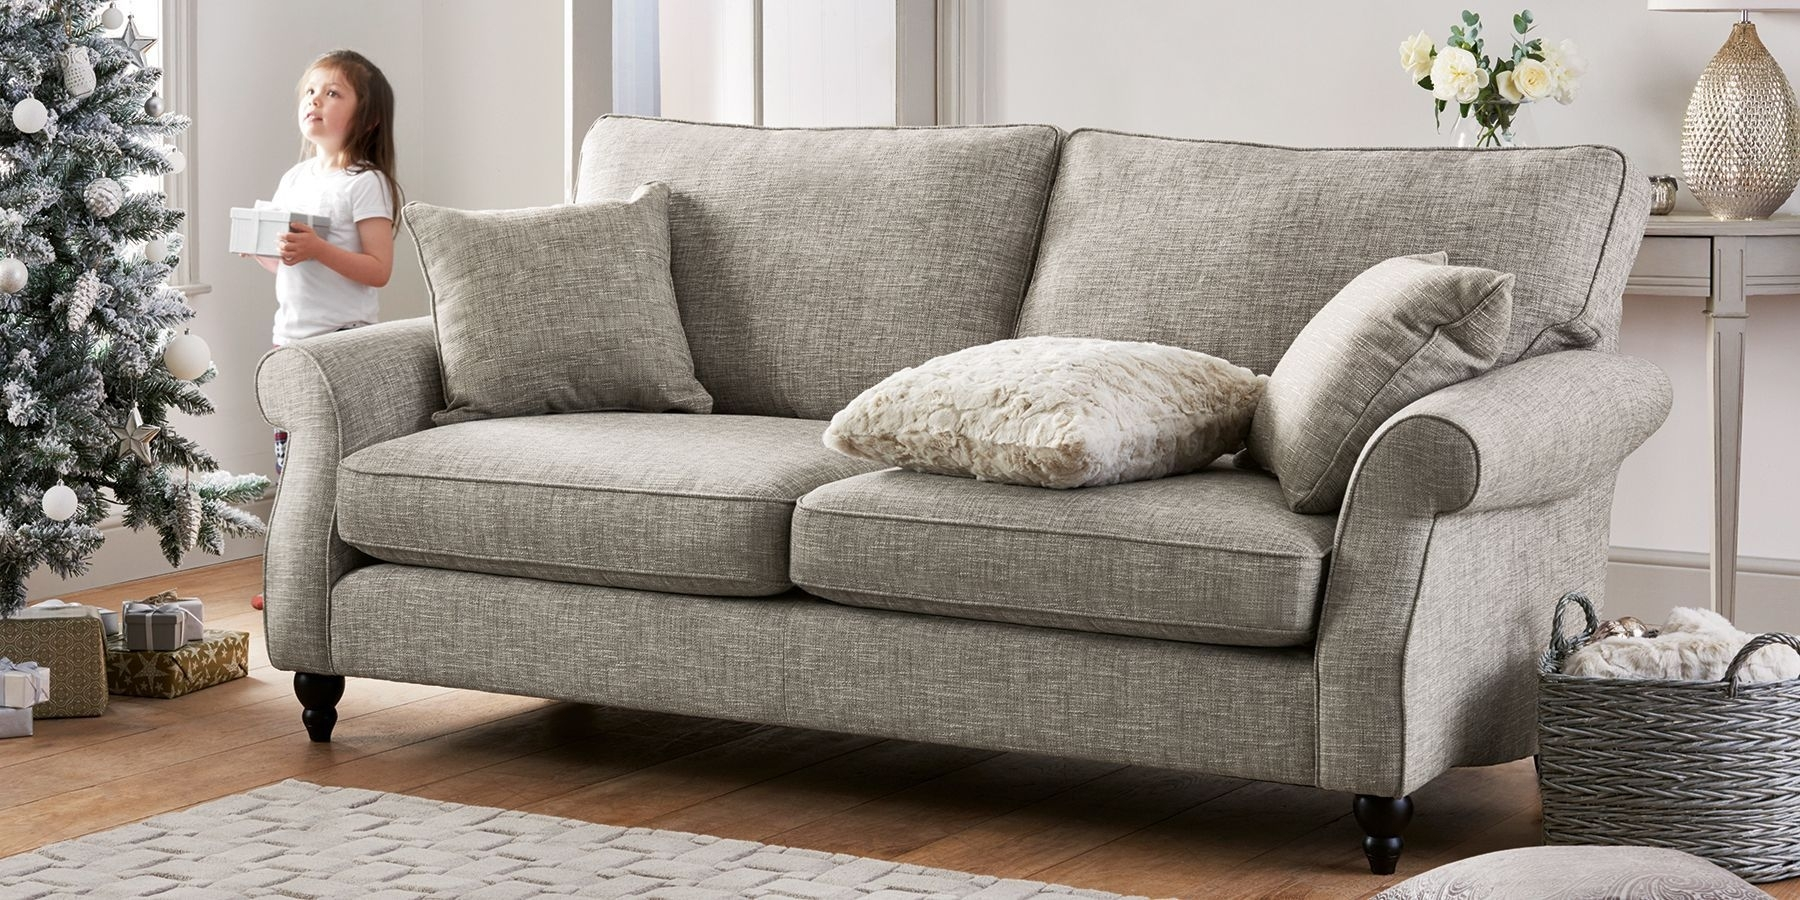 Buy Ashford Corner Chaise - Right Hand (4 Seats) Tweedy Blend Light inside Declan 3 Piece Power Reclining Sectionals With Right Facing Console Loveseat (Image 6 of 30)